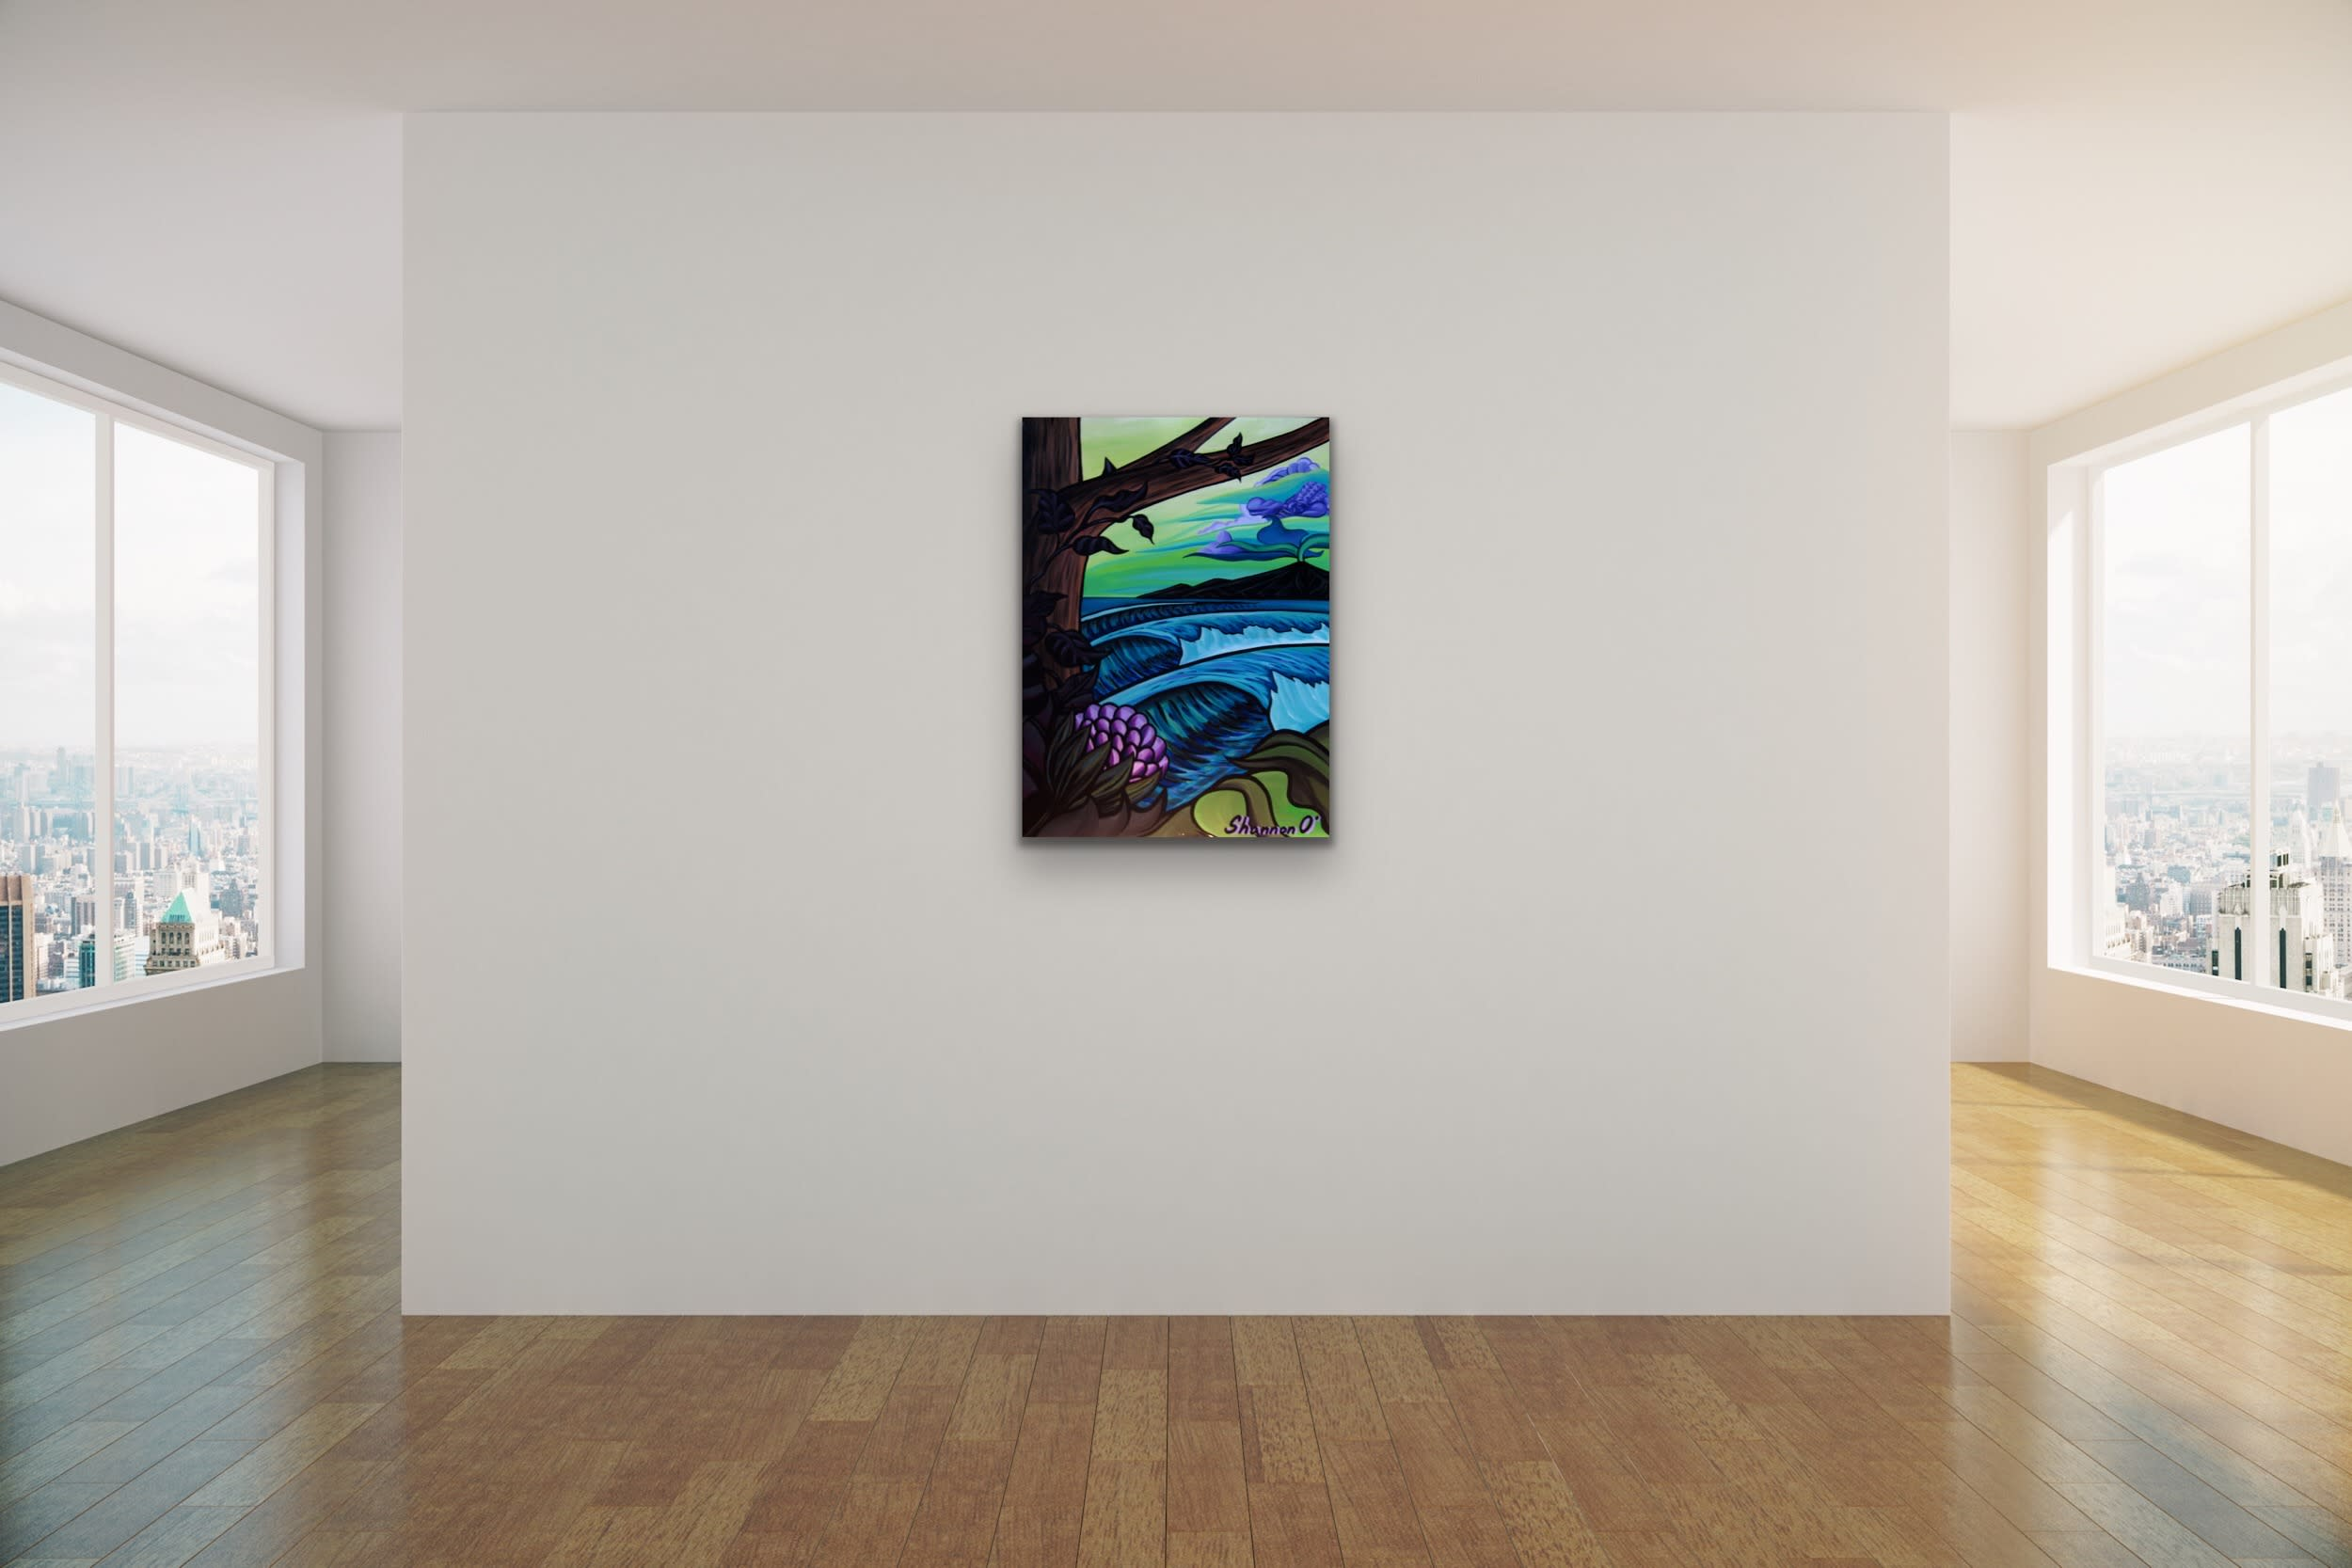 <div class='title'>           Shannon Oconnell Paintings Mock Ups Evo Art Maui Lahain Front Street Gallery Collect Popular Colorful Ocean Flowers Scenery Waves 22         </div>